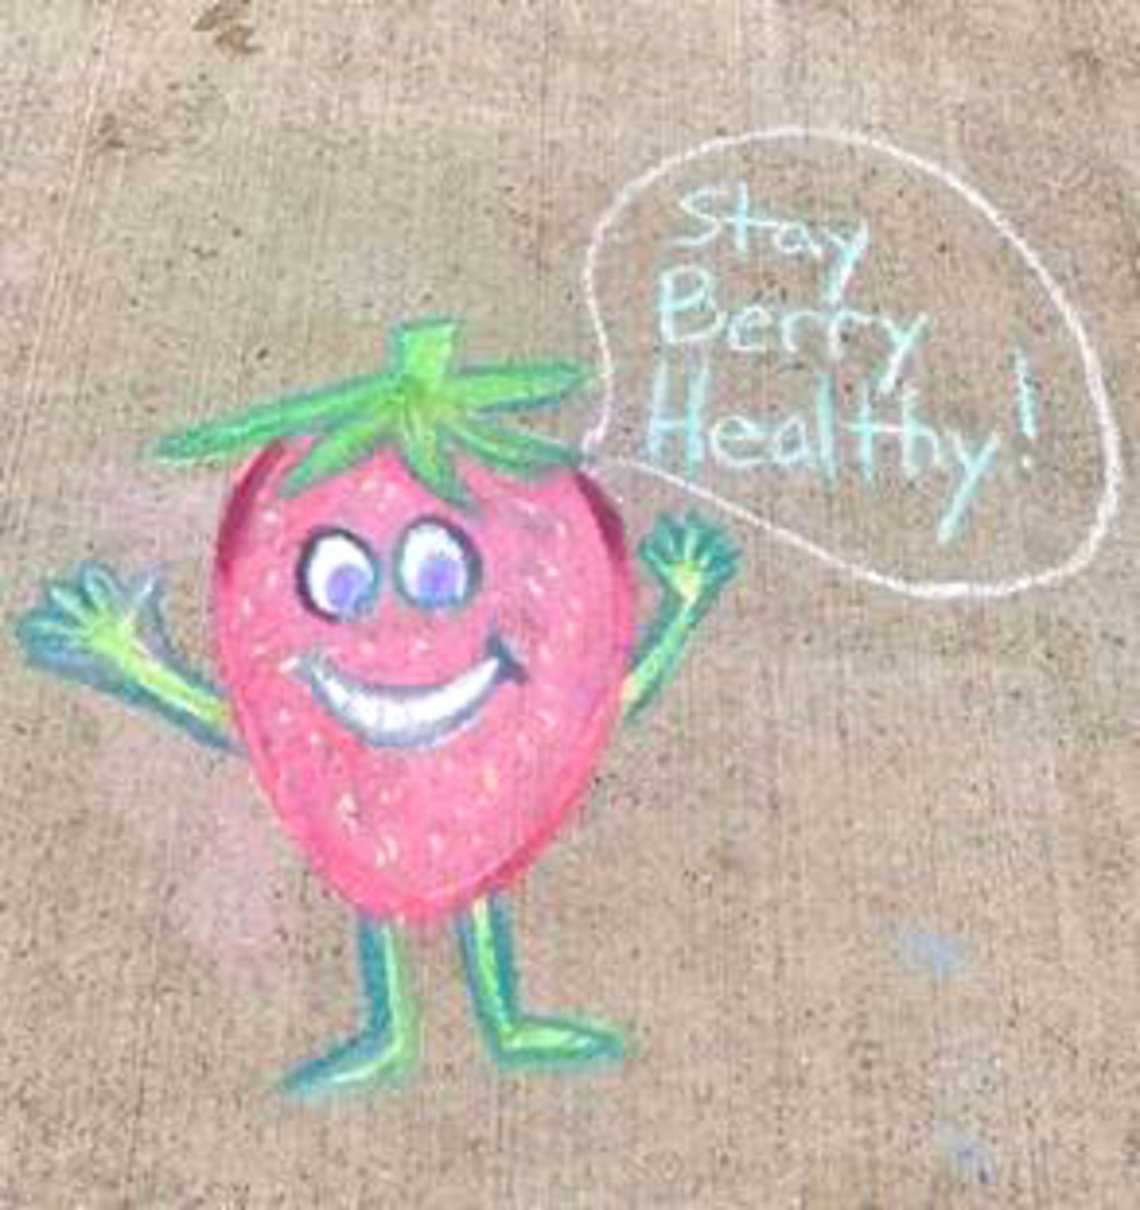 """A cartoon strawberry says """"Stay berry healthy"""""""